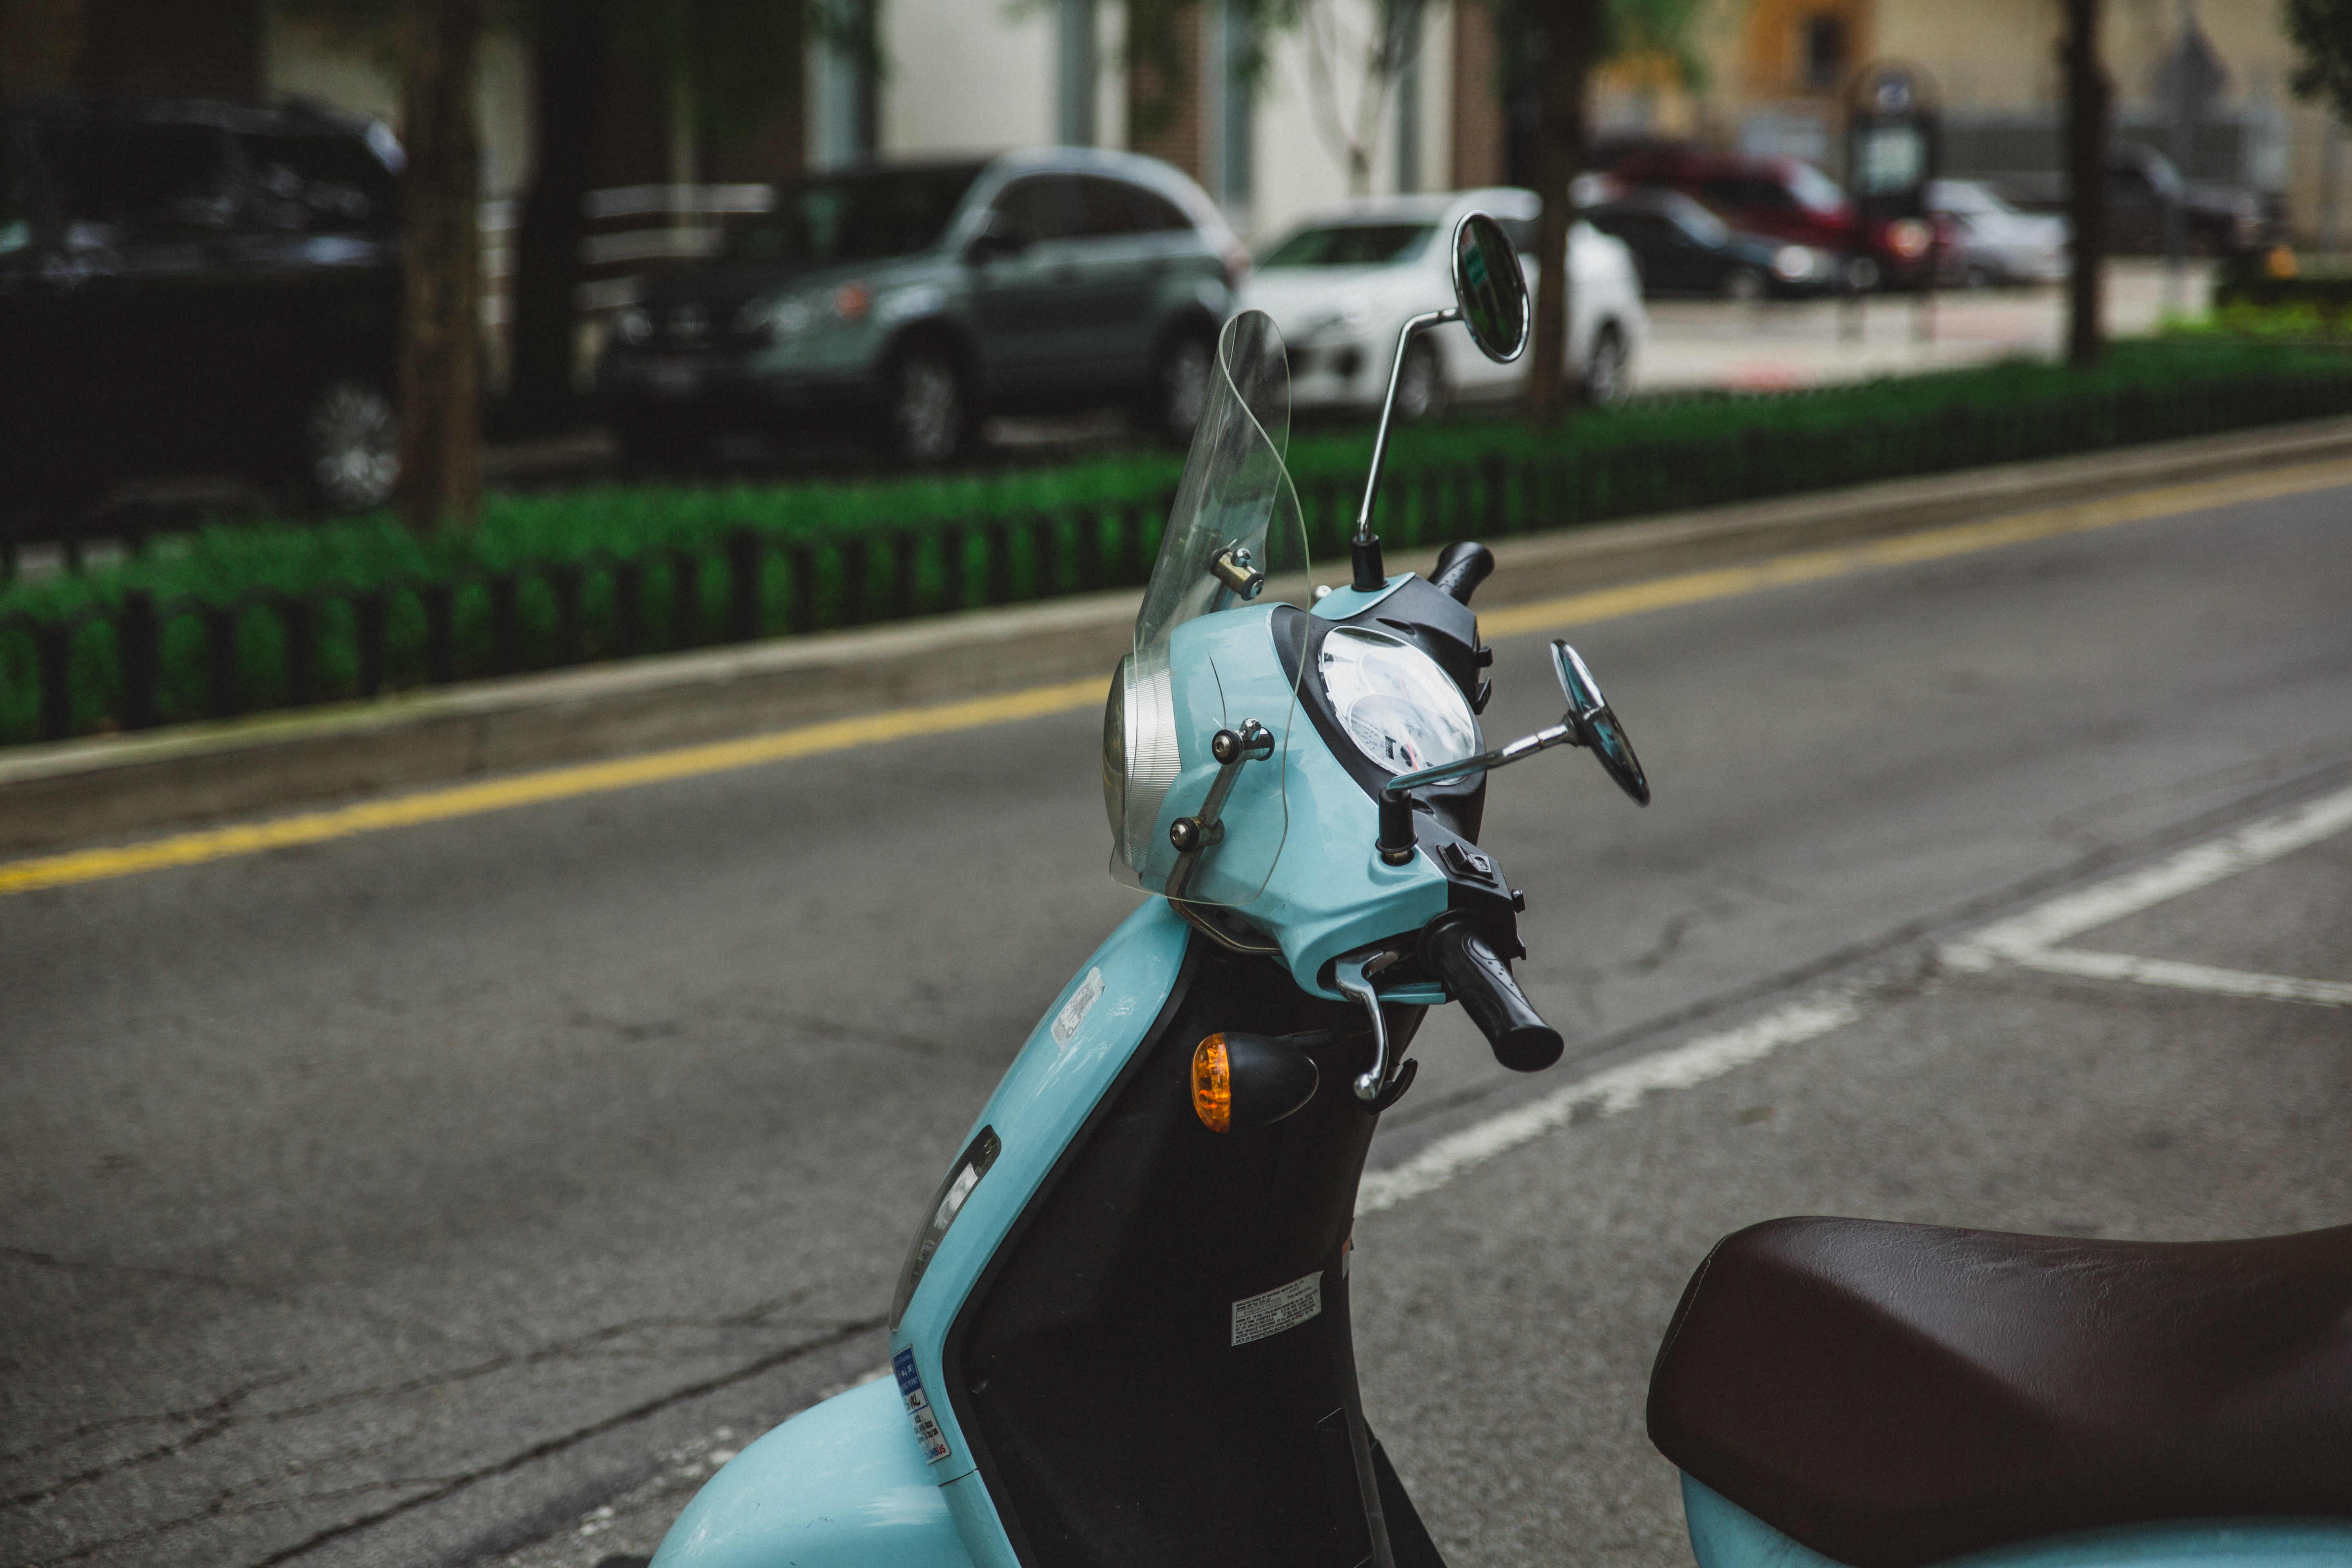 scooter_moped_steering_wheel_115480_5760x3840